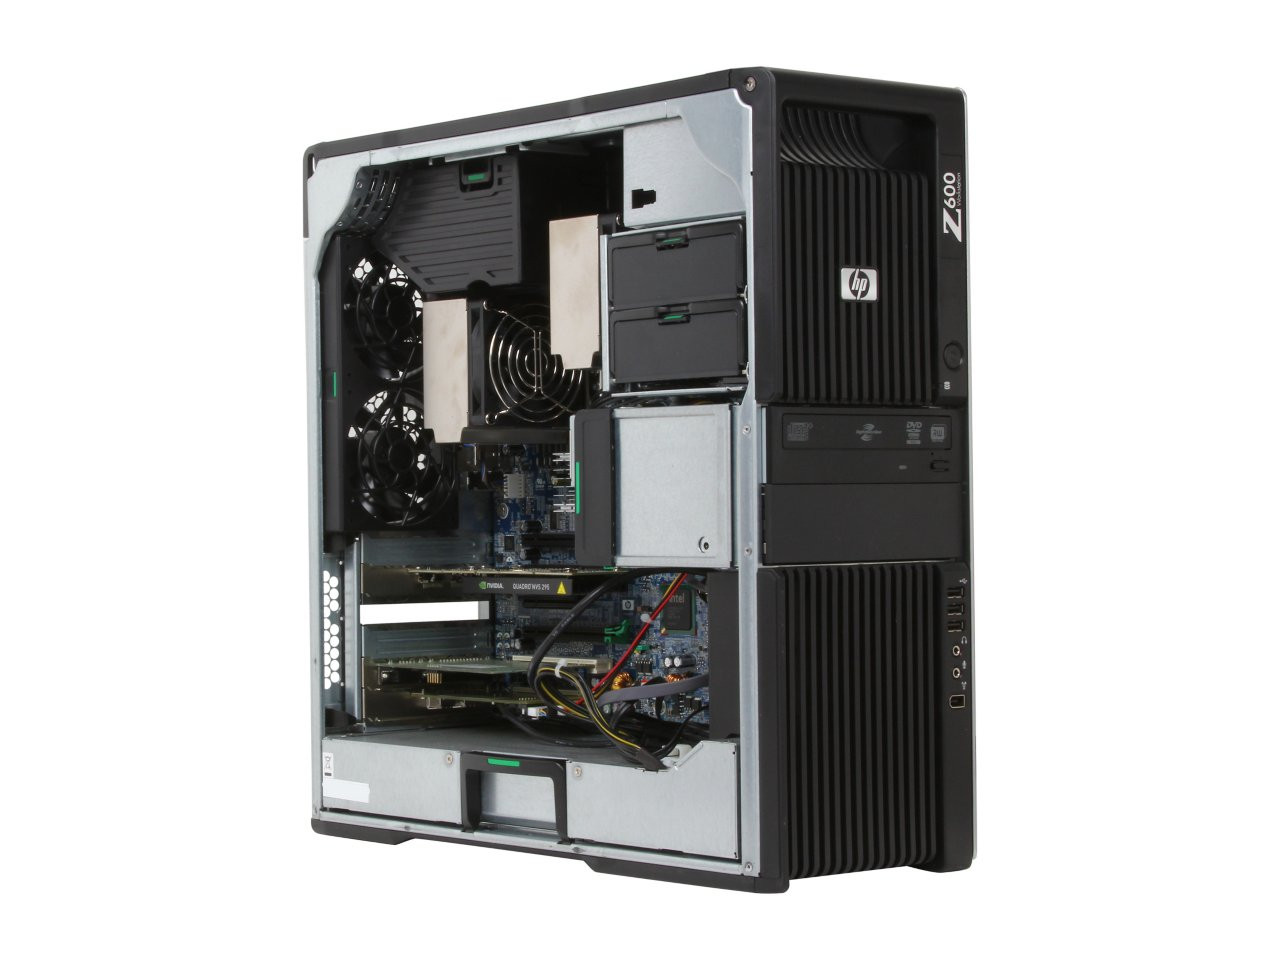 HP Z600 Workstation - inside view